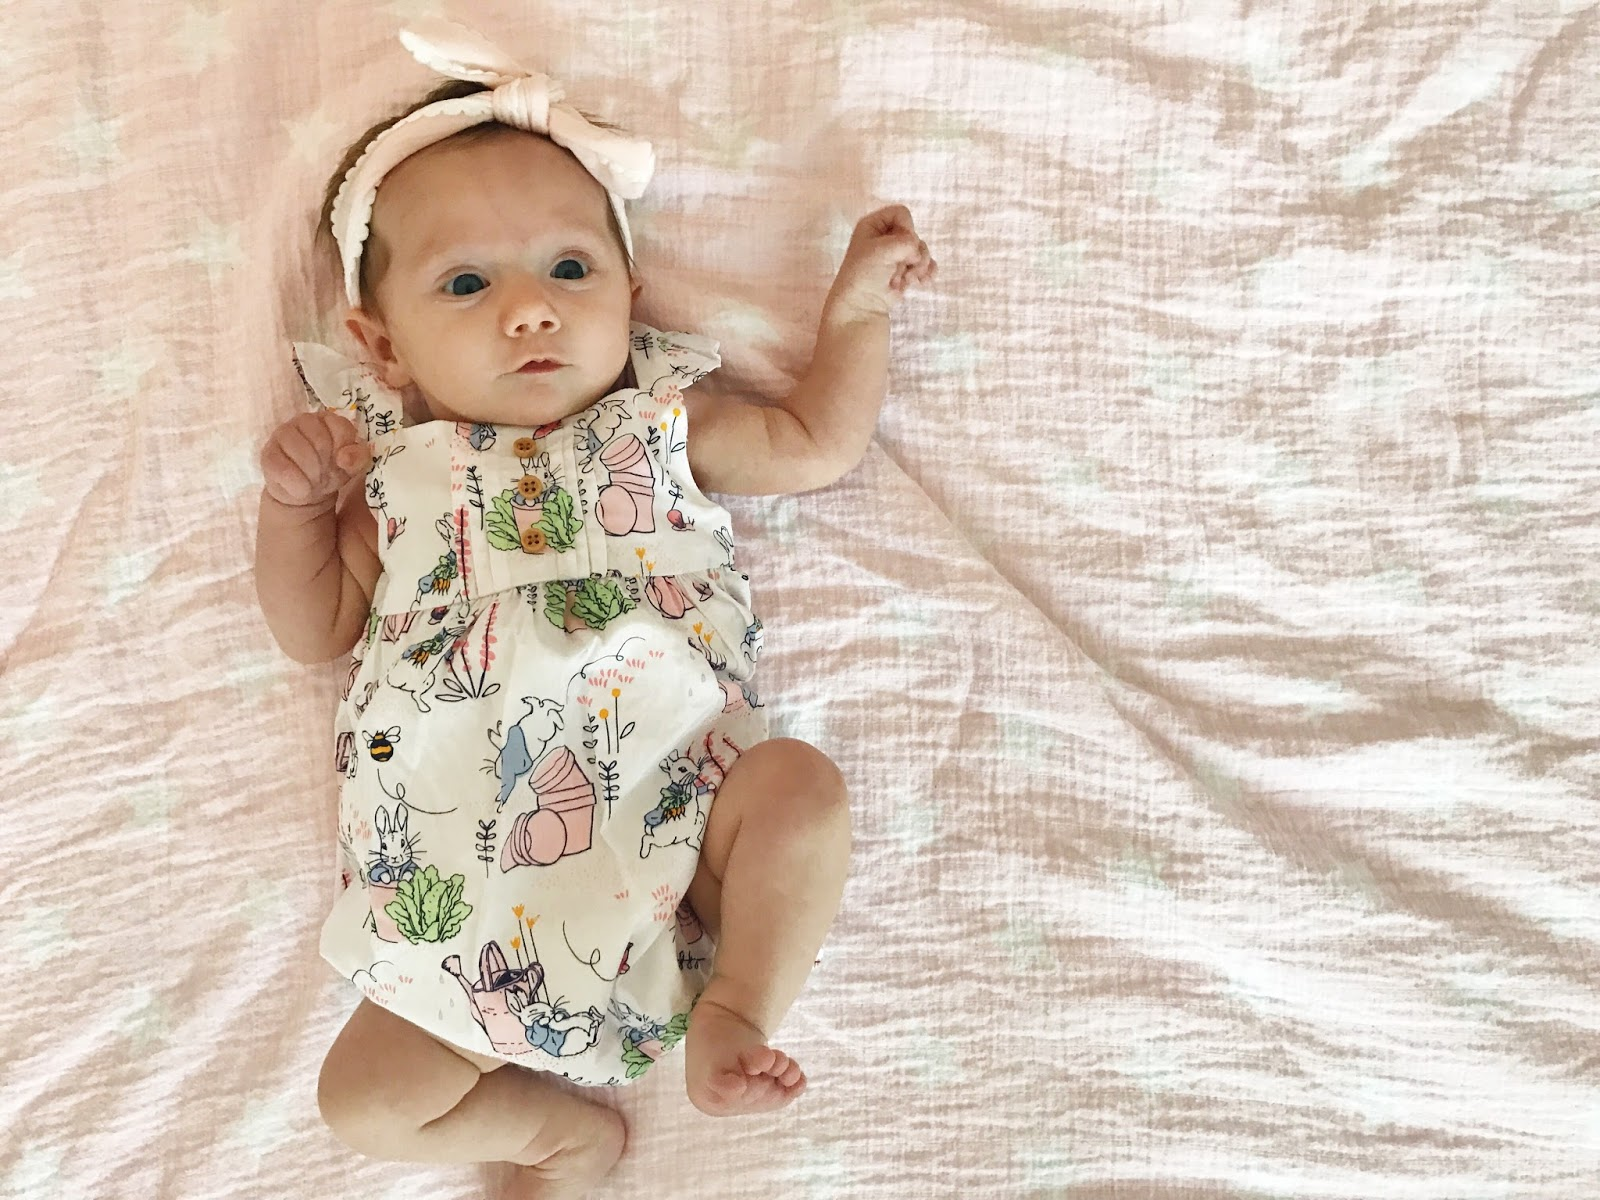 Festive ideas for babys first easter basket the chirping moms its hard to believe that this girl will be celebrating her easter in just a few weeks its time to get those baskets prepped and ready for the big day negle Images